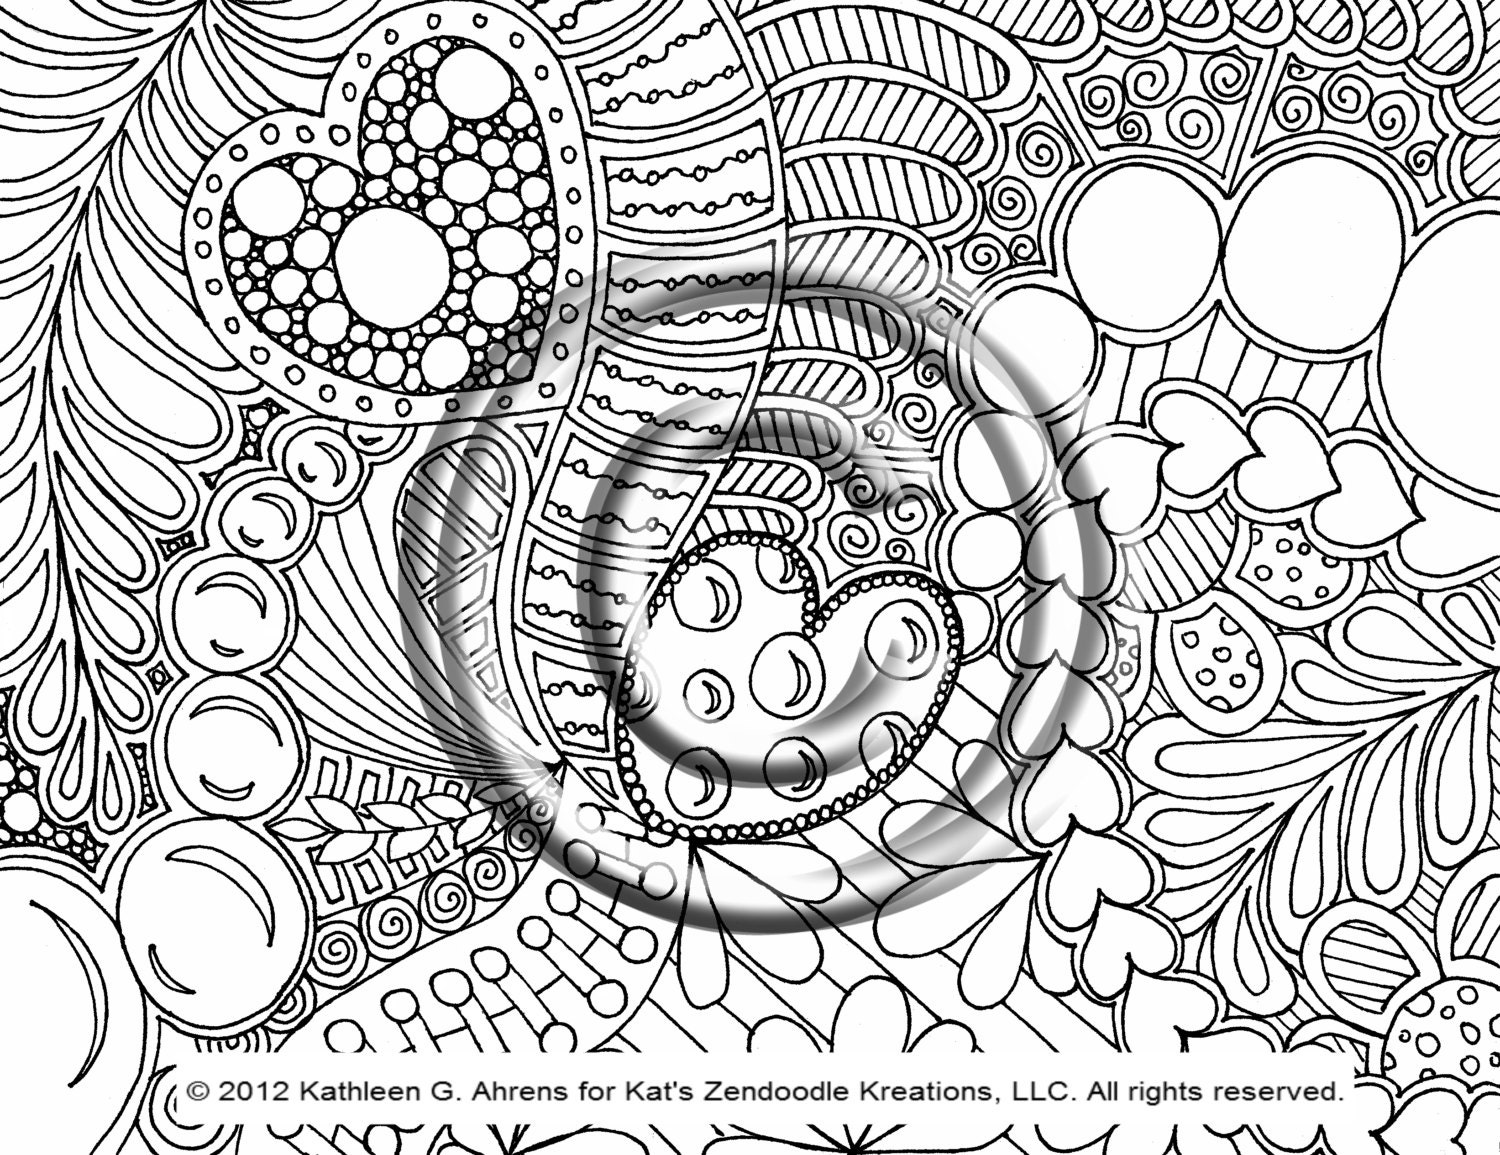 psychedelic hippie coloring page ntfd4 pages for kids 570x438 psychedelic - Psychedelic Hippie Coloring Pages